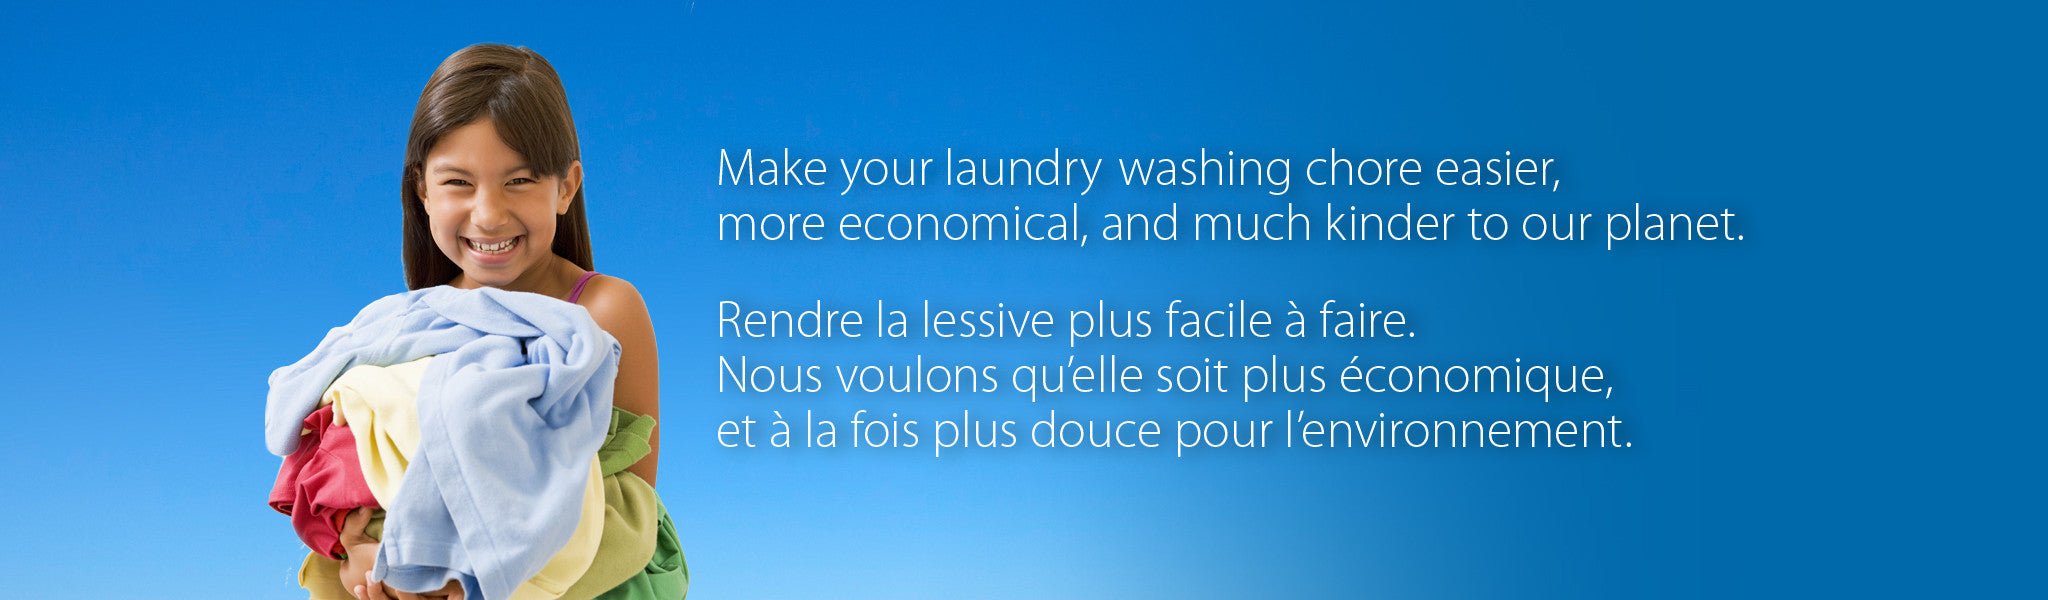 Make your laundry washing chore easier, more economical, and much kinder to our planet. |  Rendre la lessive plus facile à faire. Nous voulons qu'elle soit plus économique, et à la fois plus douce pour l'environnement.